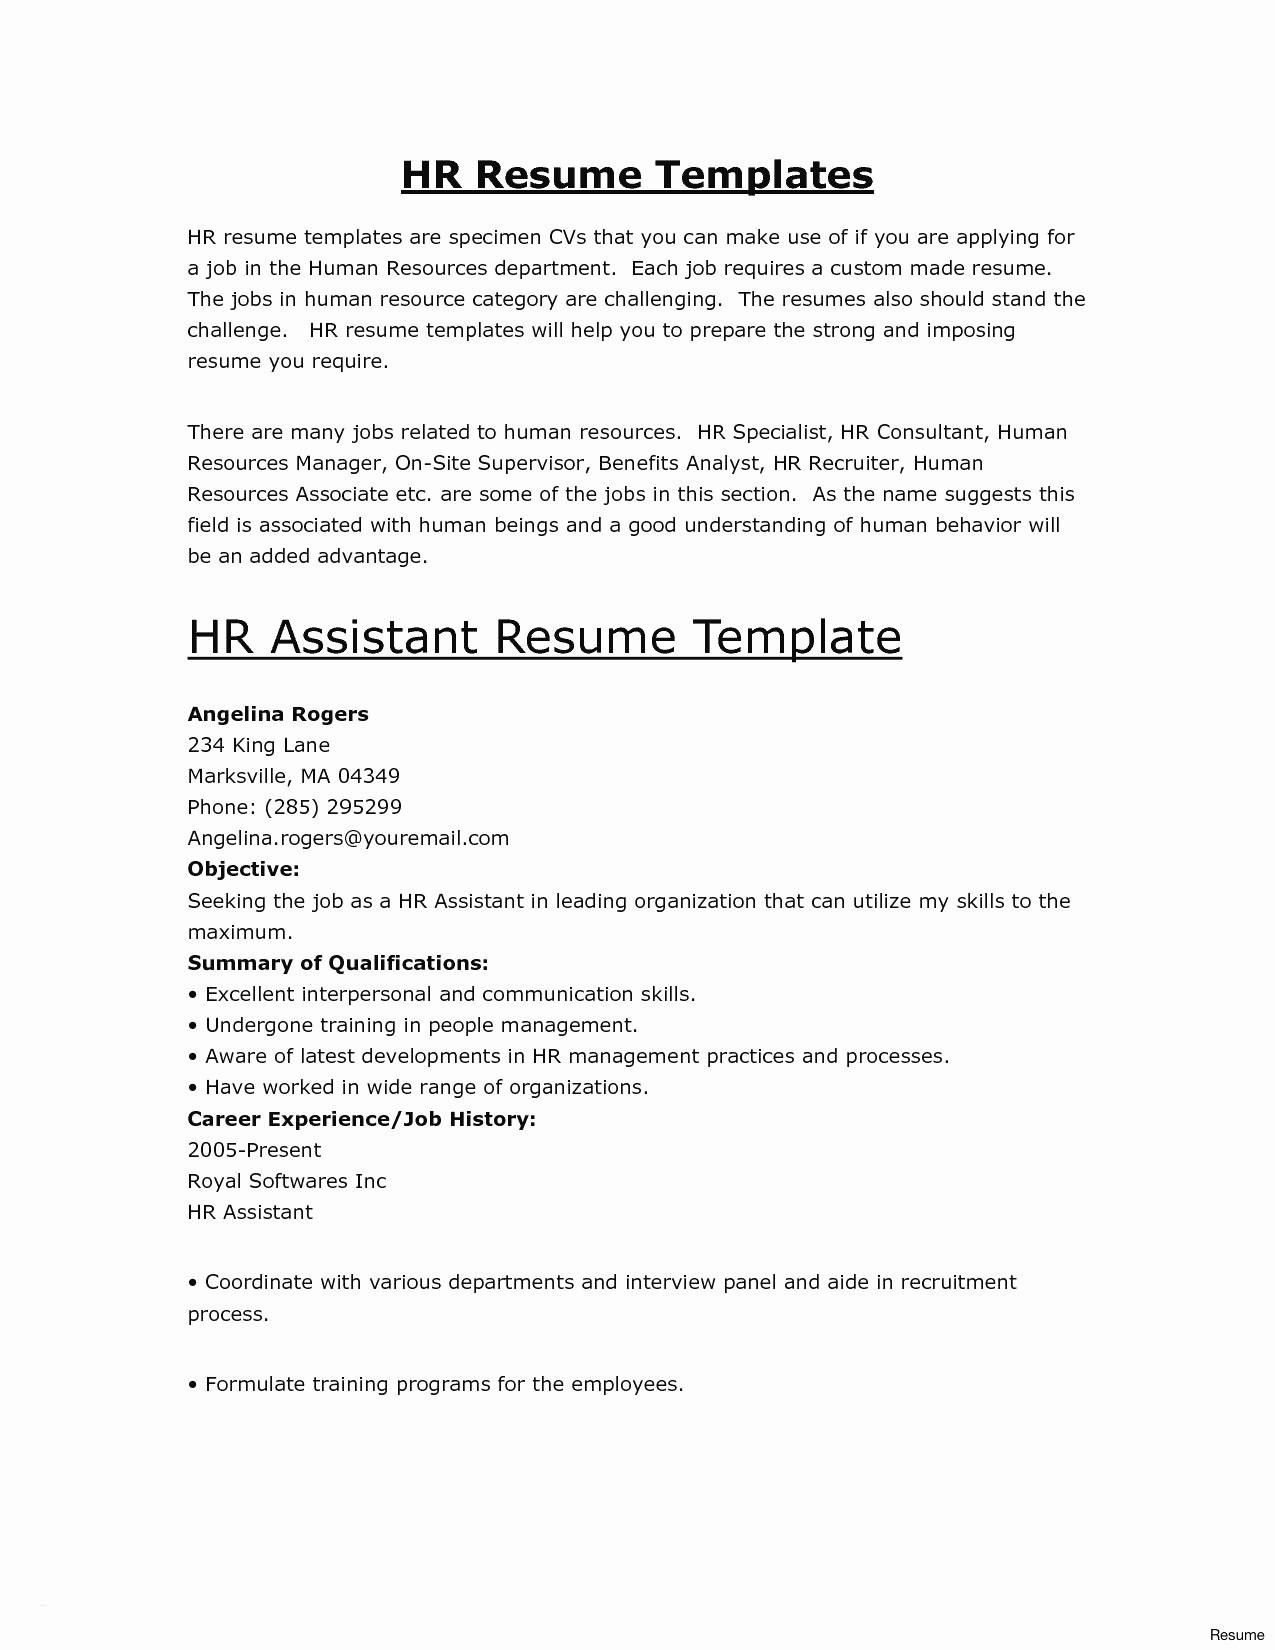 self employment letter template example-How Do I Write A Resume Best Self Employed Resume New Luxury Examples Resumes Ecologist 19-r